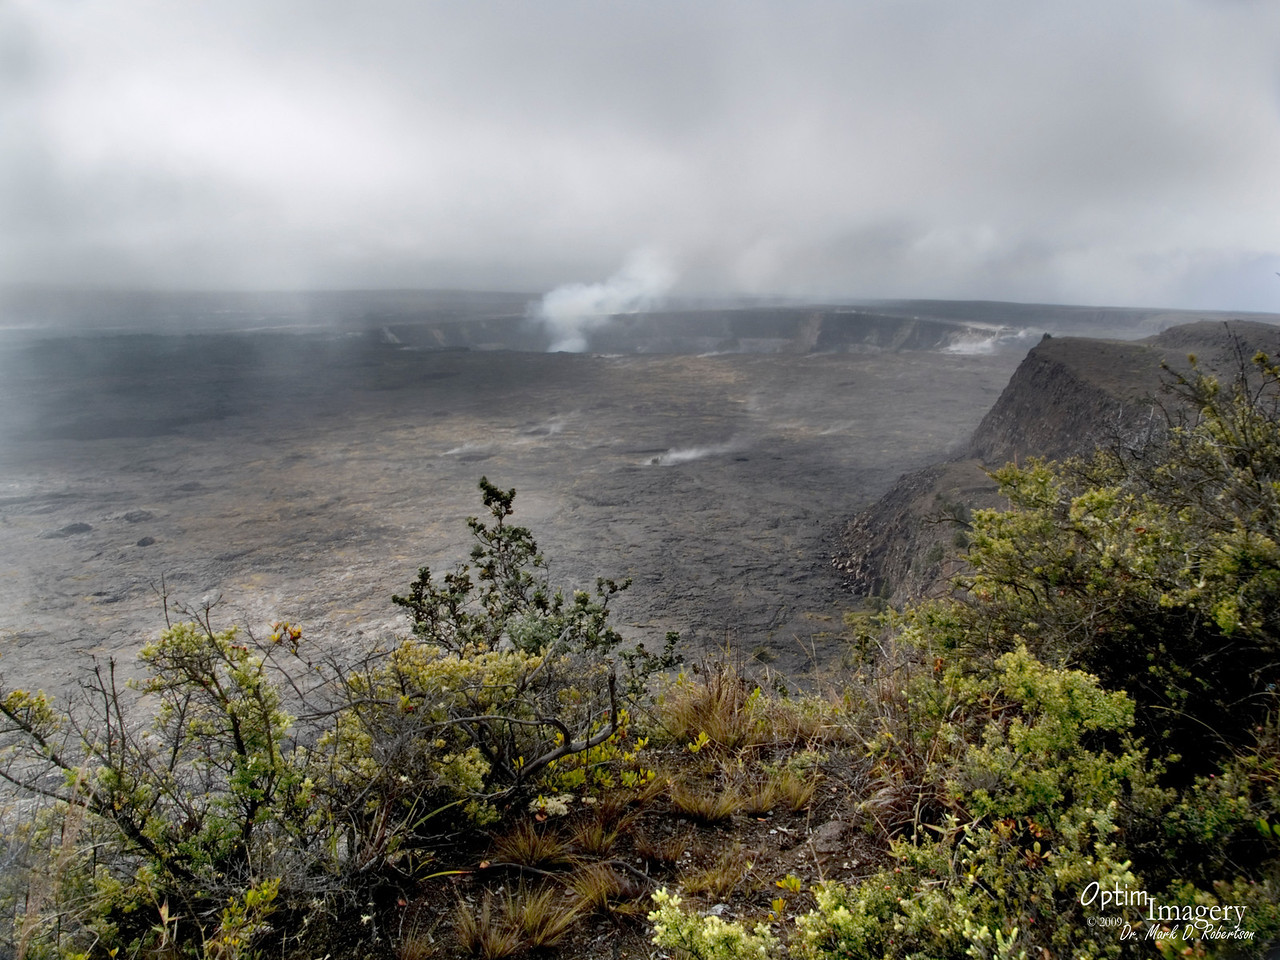 Kilauea Caldera.  As recently as the late 1800's, the bottom was twice as deep as it is today (about 500 feet today) and one could see lakes and fountains of molten lava churning.  It solidified roughly in the configuration seen today in about 1905.  However, there has been occasional seepage of lava through fissures, forming lava flows as recently as the 1970's.  The hole you see in the distance (with the large steam plume) is Halema'uma'u, the central crater of the caldera.  As recently as 1924, it contained a molten lava lake.  Now, the rock is thought to be solid down to a depth of about 2 miles below the surface.